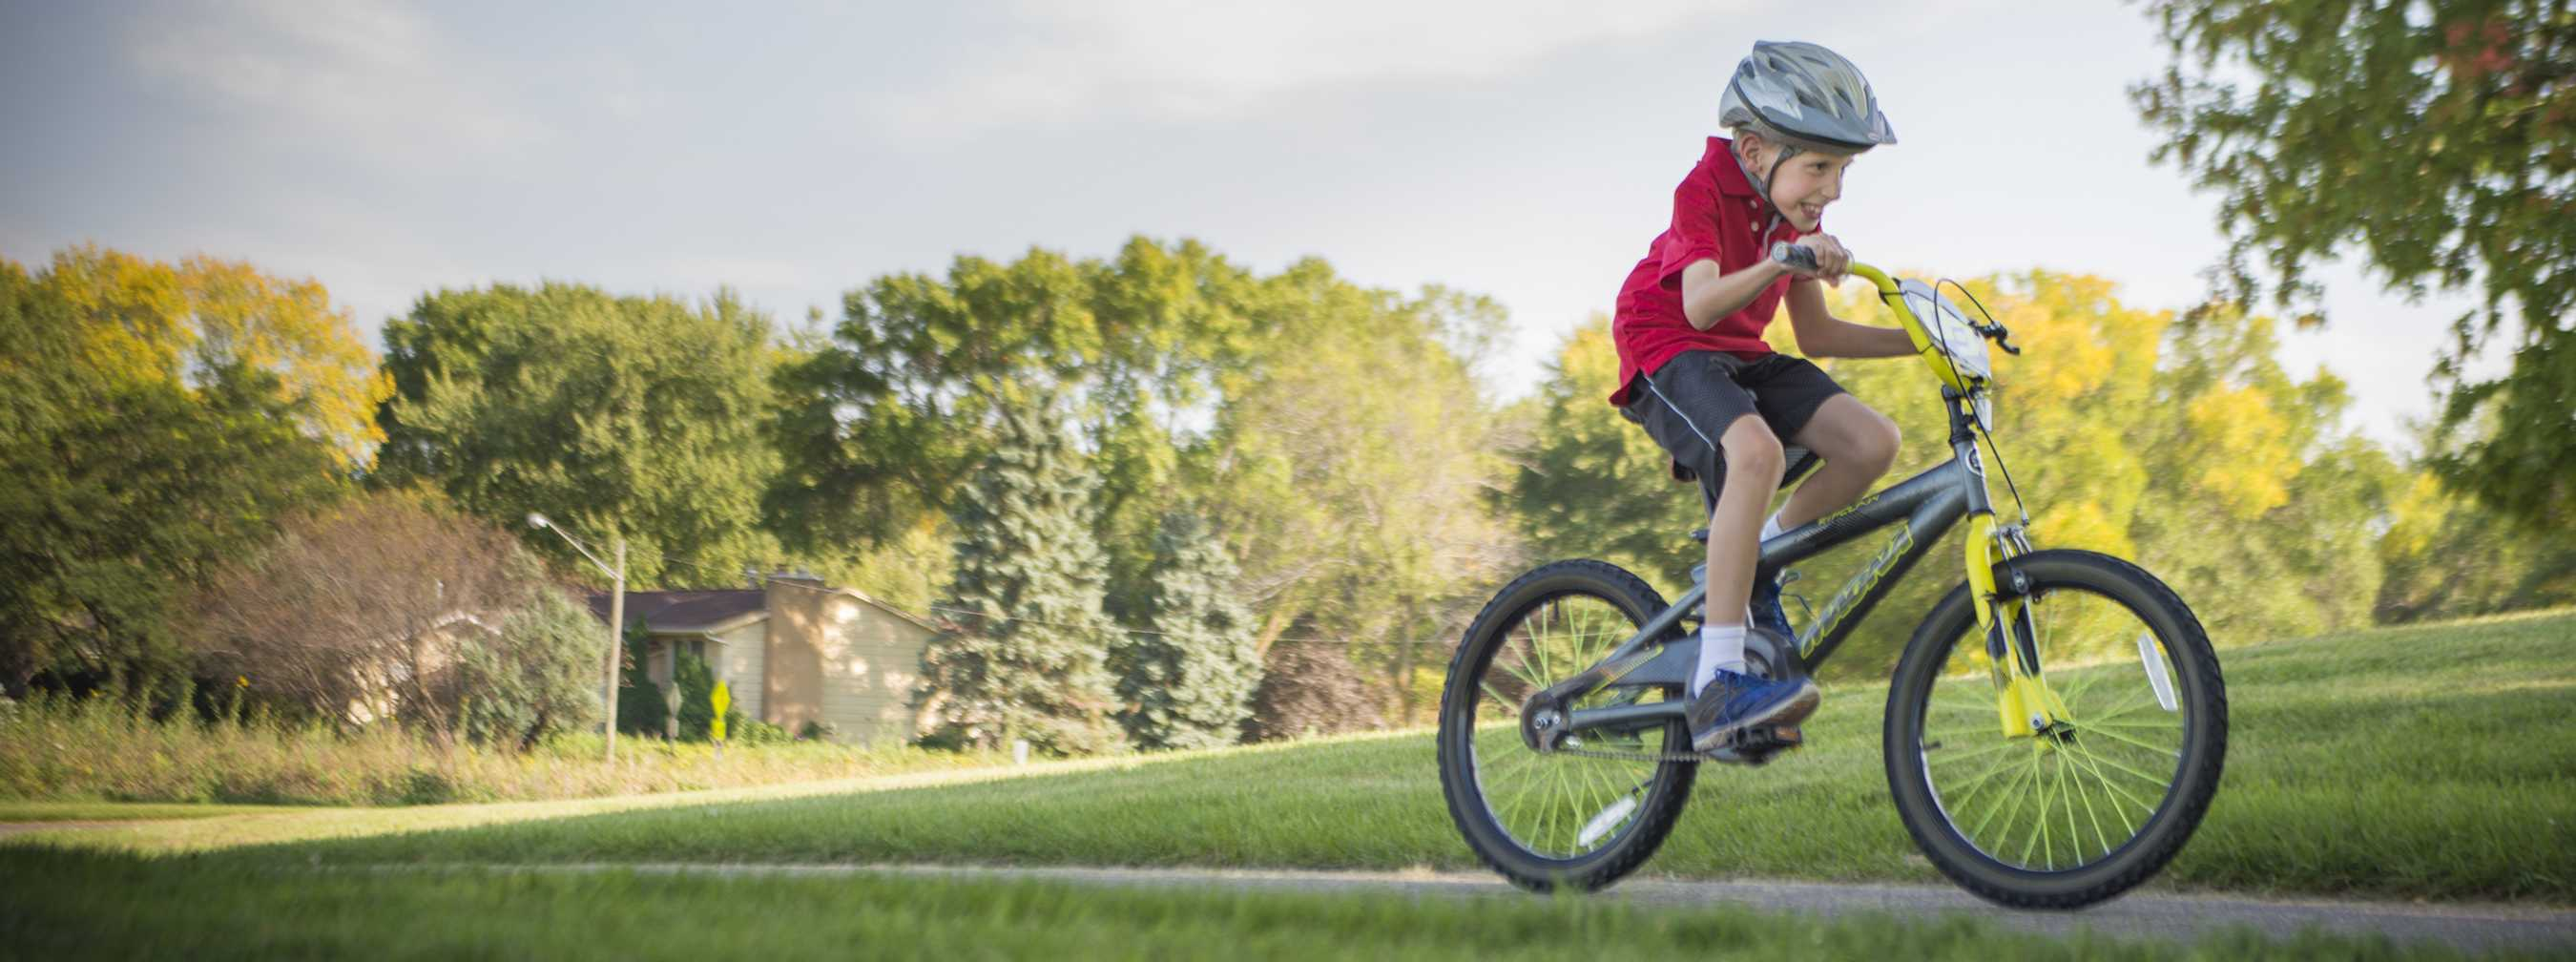 Gillette scoliosis patient Joshua riding a bike